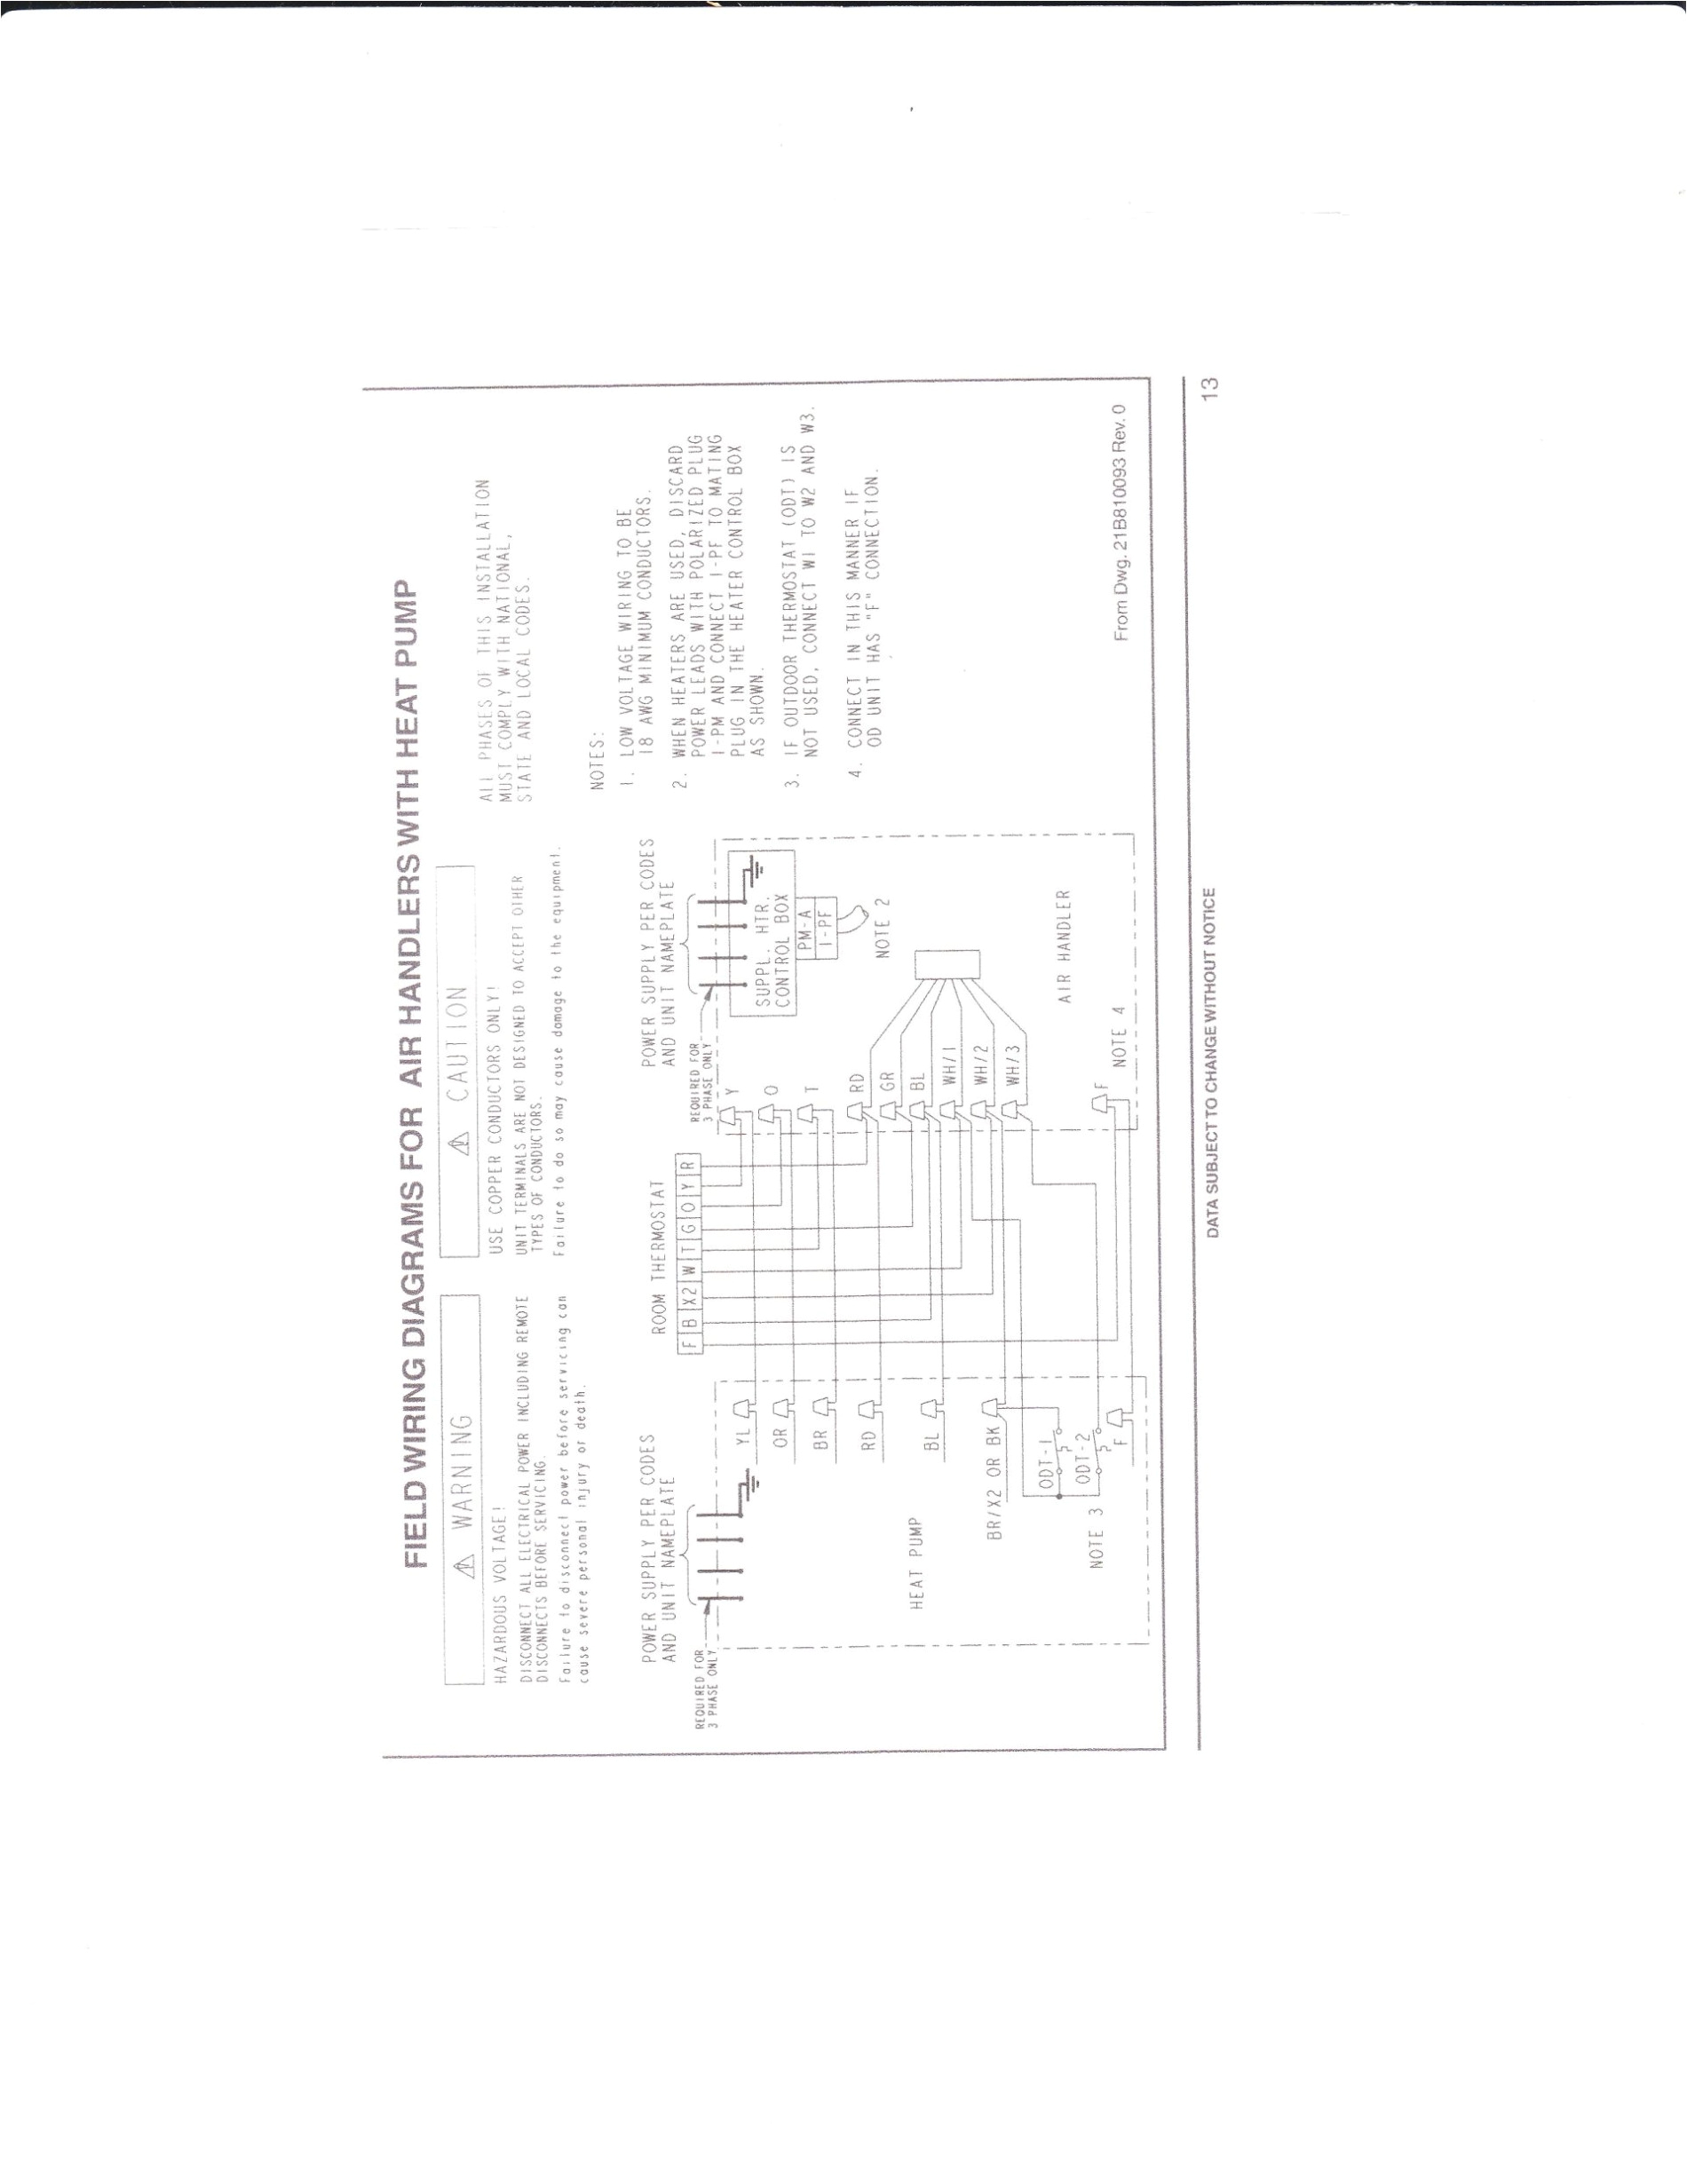 programmable thermostat wiring diagram lovely digital thermostat wiring diagram reference 2 wire thermostat